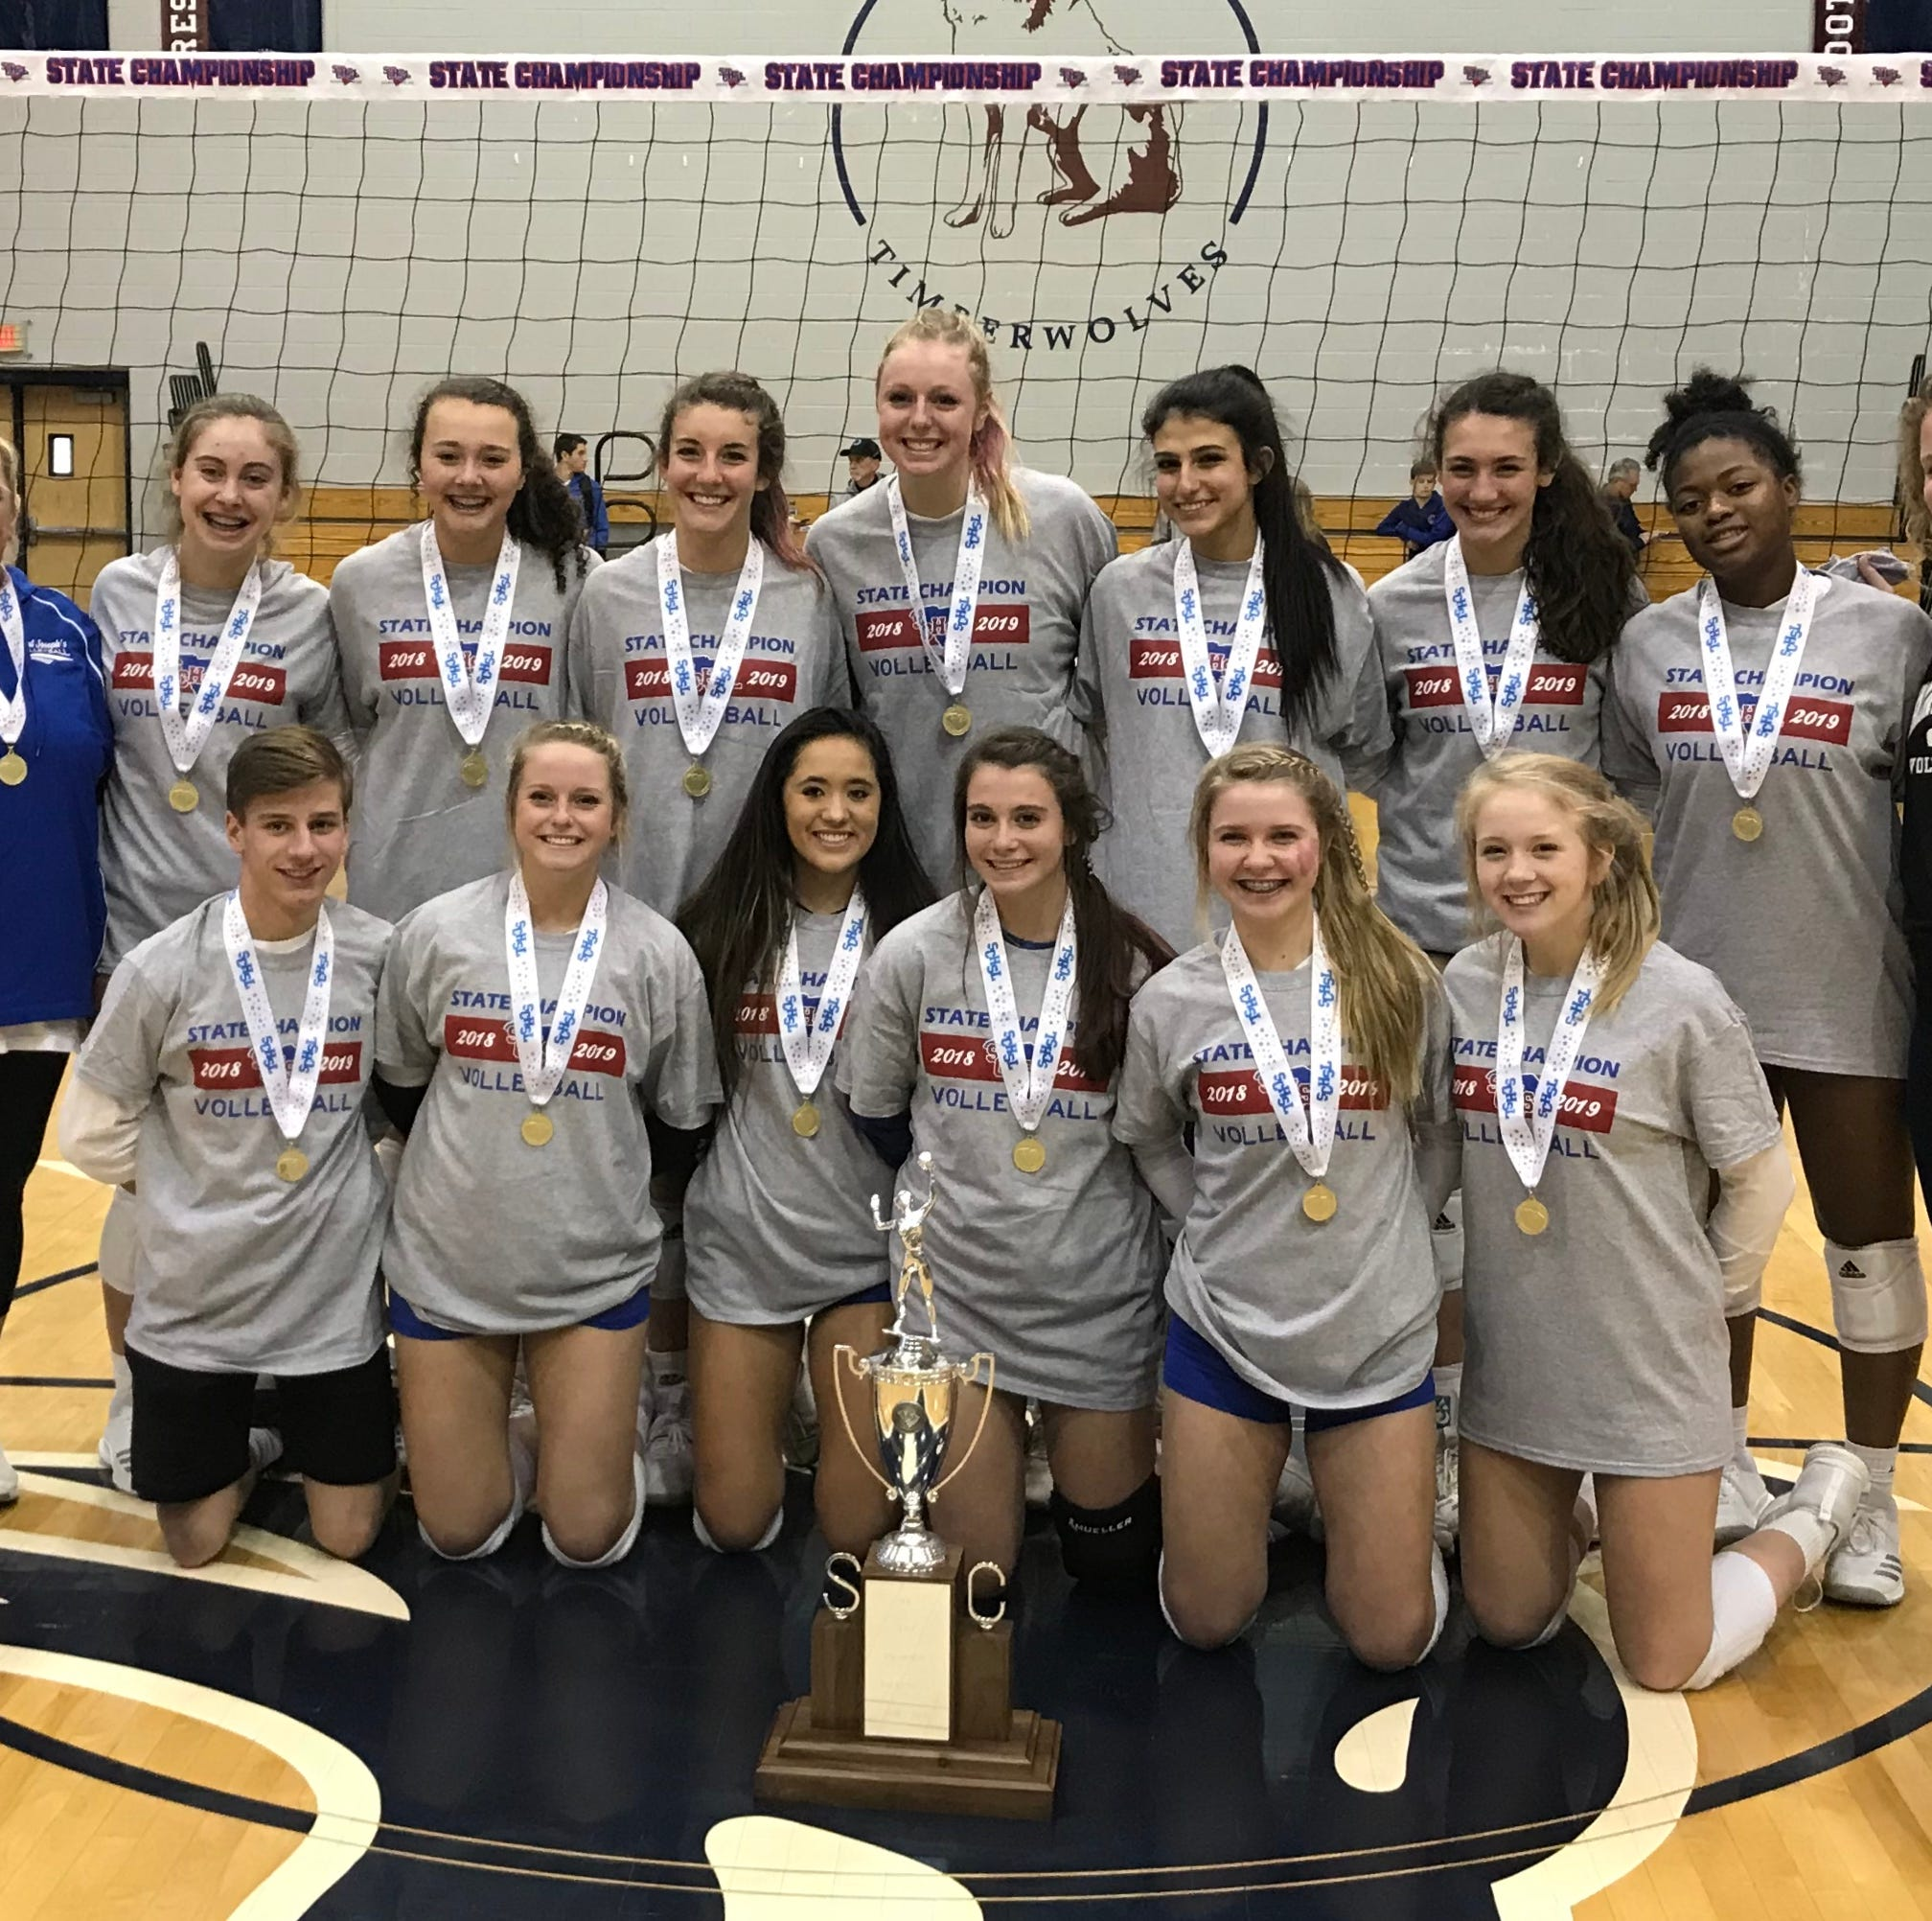 The St. Joseph's volleyball team won its eighth straight state championship with a sweep over Oceanside Collegiate on Saturday